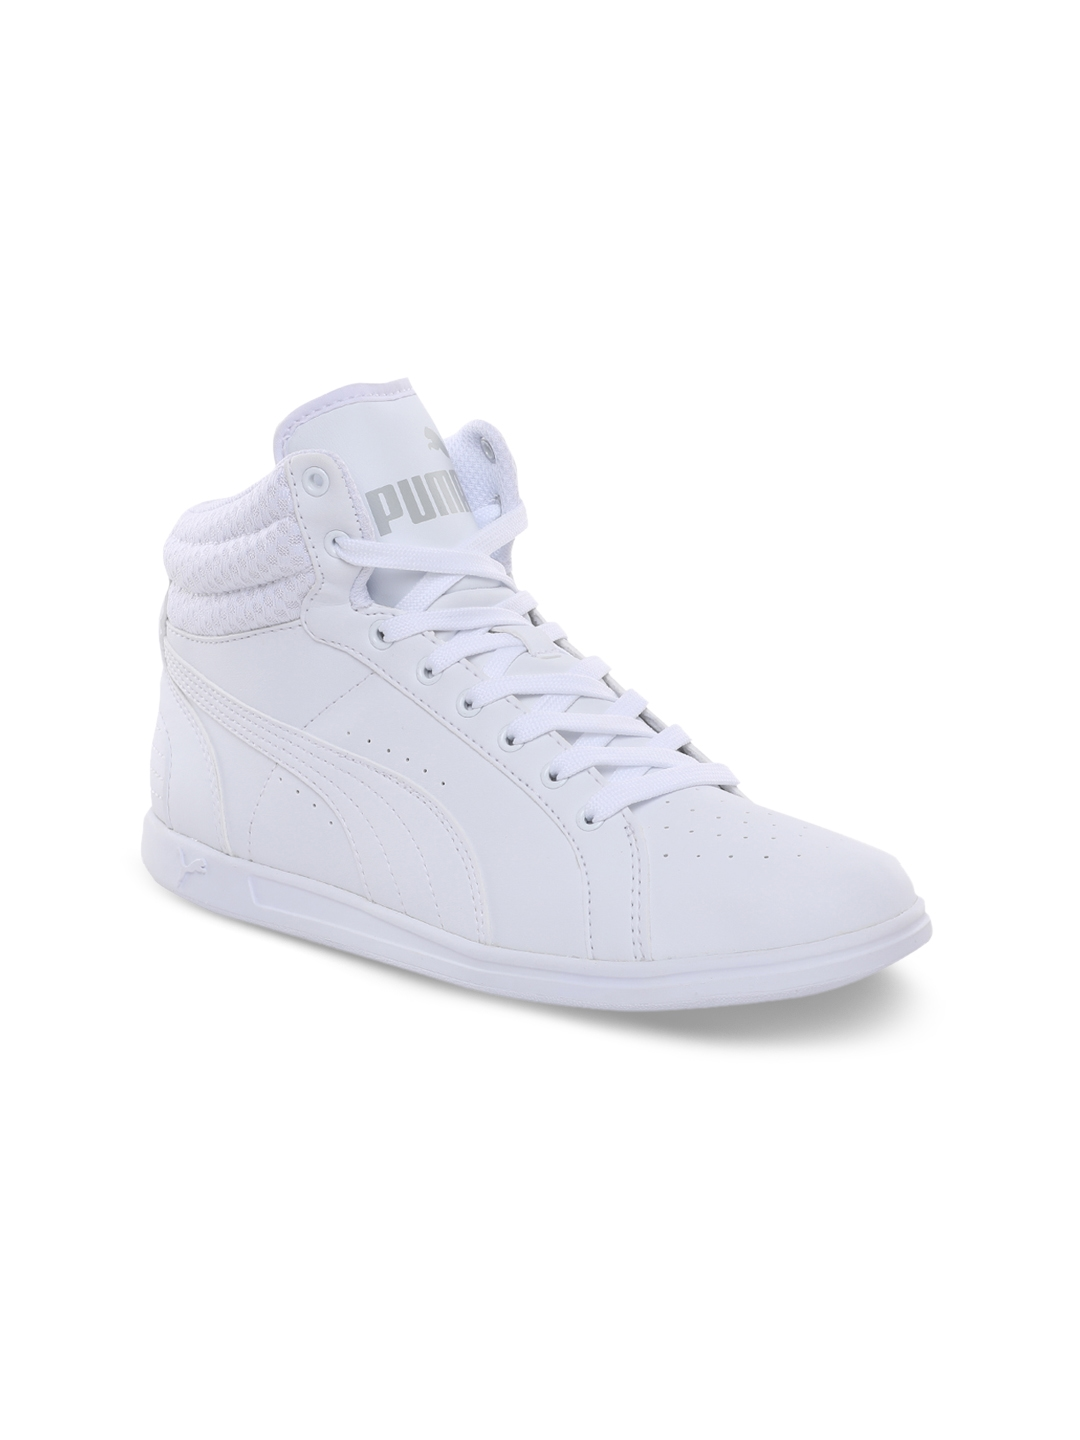 b71b6c671e3a5 Buy Puma Women White Solid Synthetic Leather Mid Top Sneakers ...